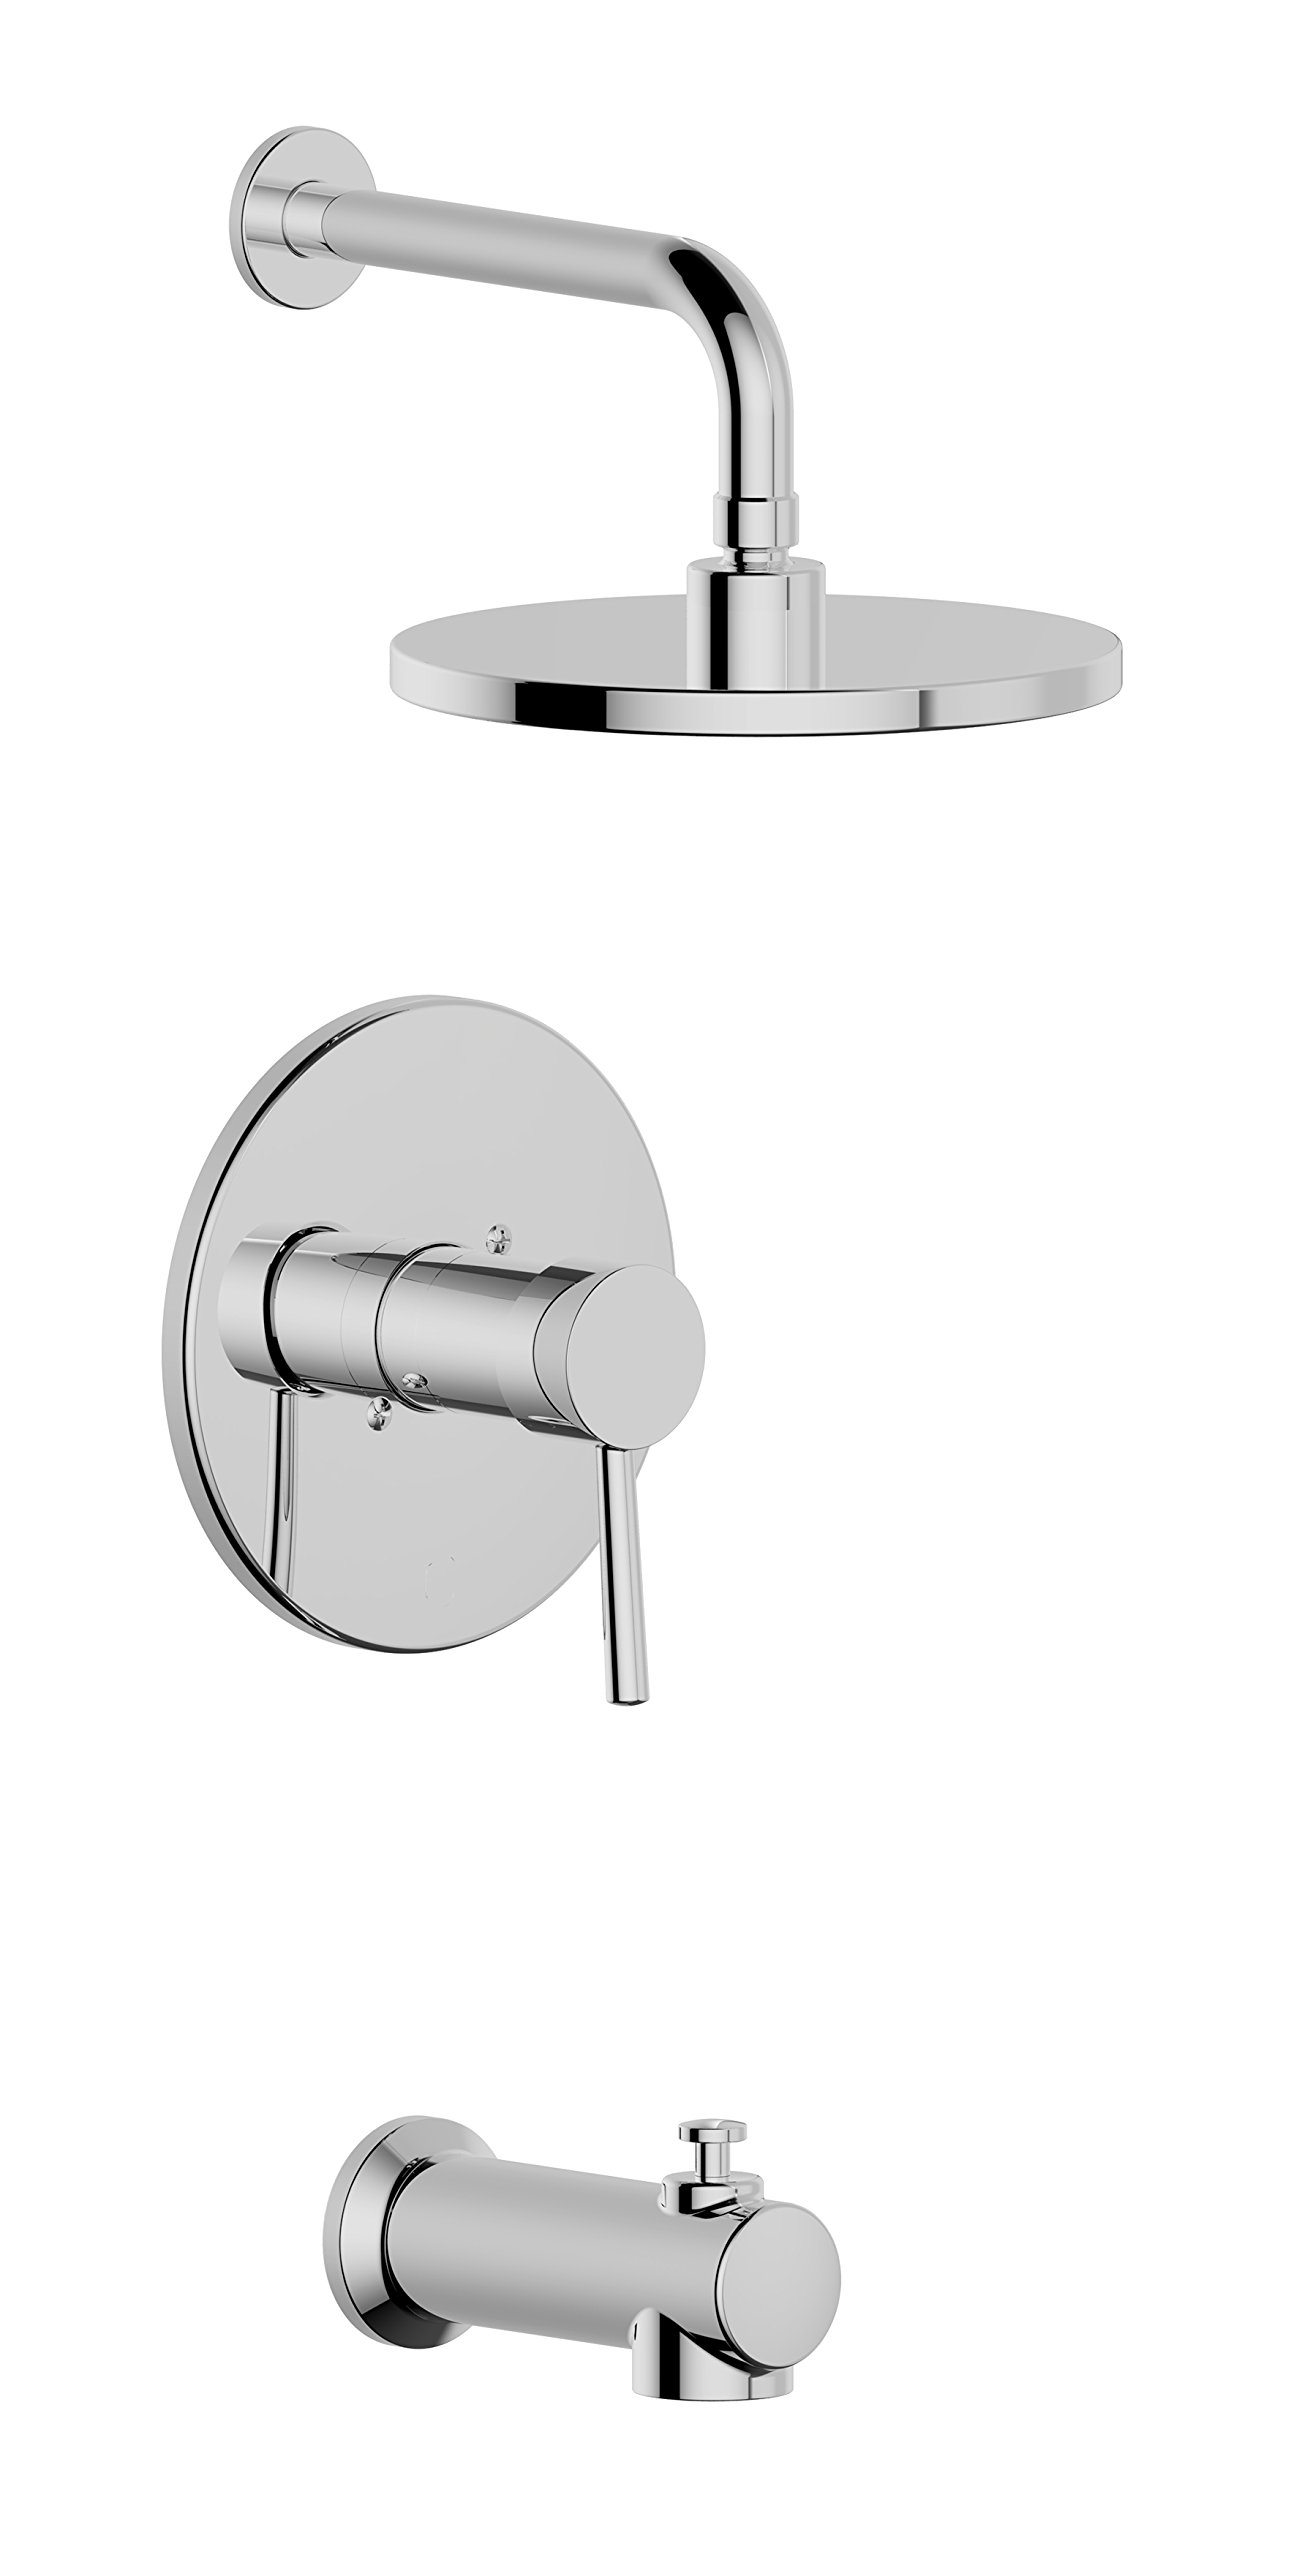 Serenade STS01-PC Single Handle Tub & Shower Faucet, Pressure Valance Valve,with 8'' Showerhead and Spout, Meets UPC, cUPC, ASSE1016 Standard,Polished Chrome Finished